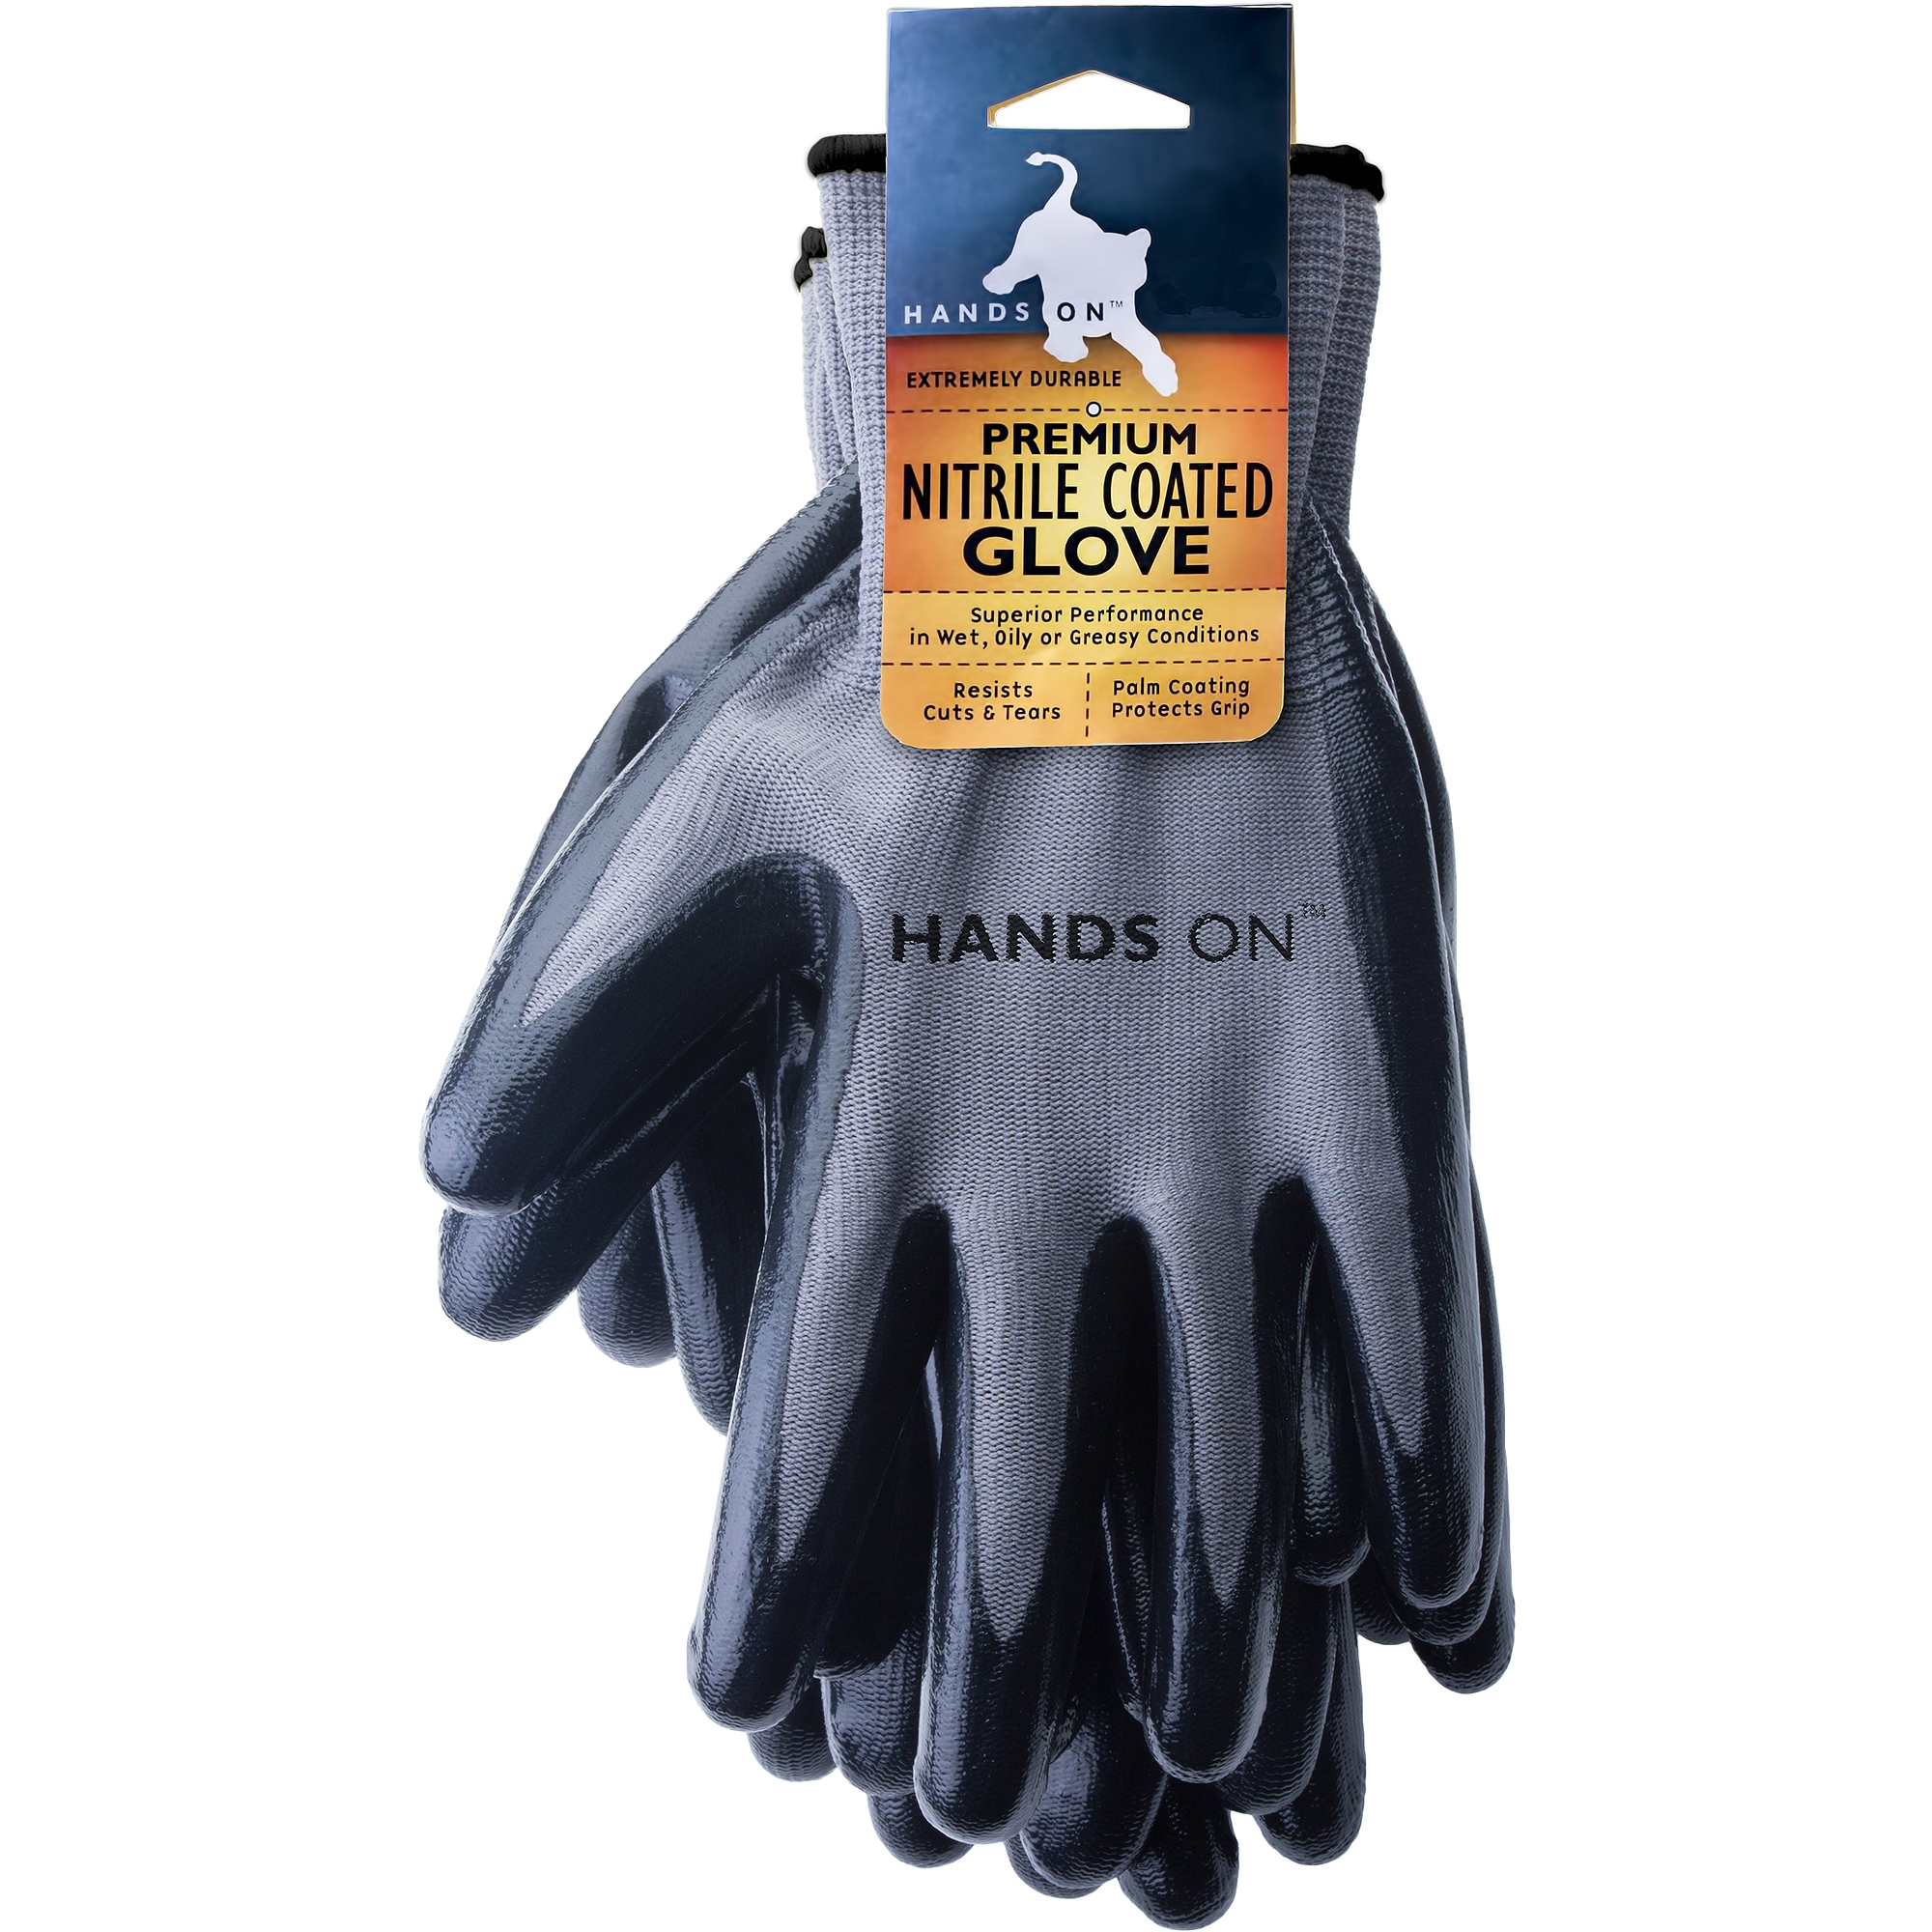 Hands On 12 Pair Value Pack, Premium Smooth Finish Nitrile Coated Glove